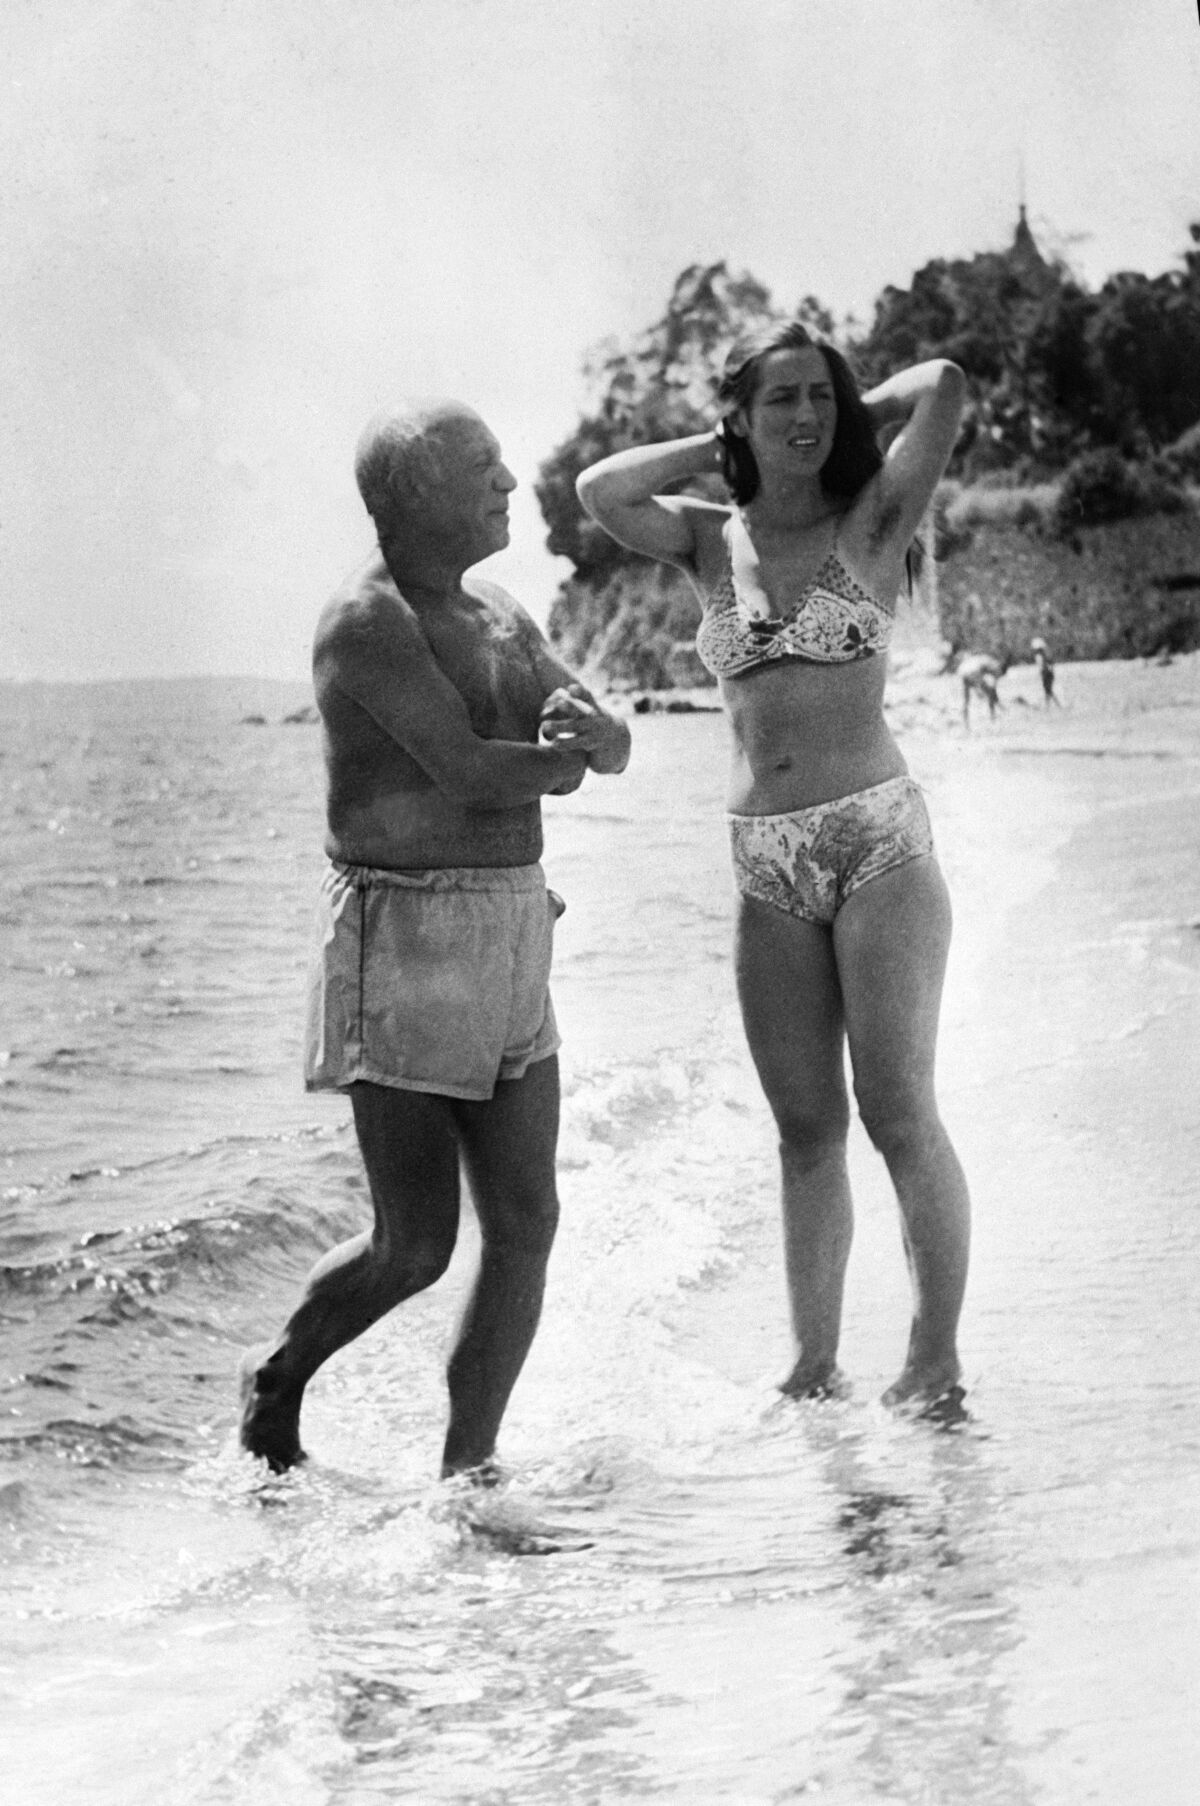 Pablo Picasso and Francoise Gilot on holidays, 1949. Photo by Keystone-France/Gamma-Keystone via Getty Images.